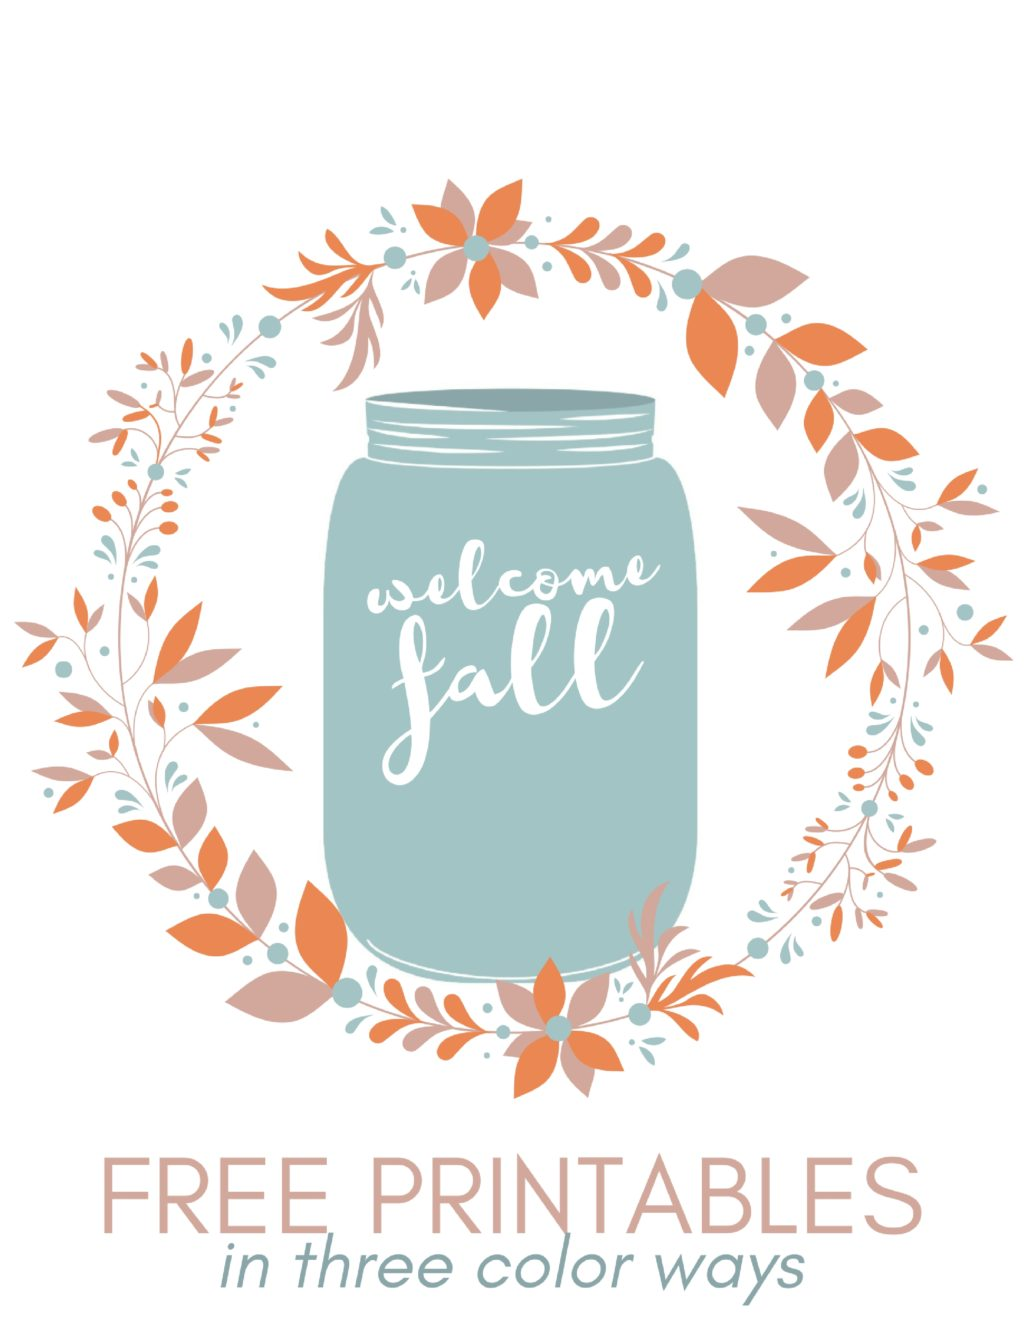 free welcome fall printables crafts mad in printable jars three colorways glitter markers coloring pages Free Printable Mason Jars